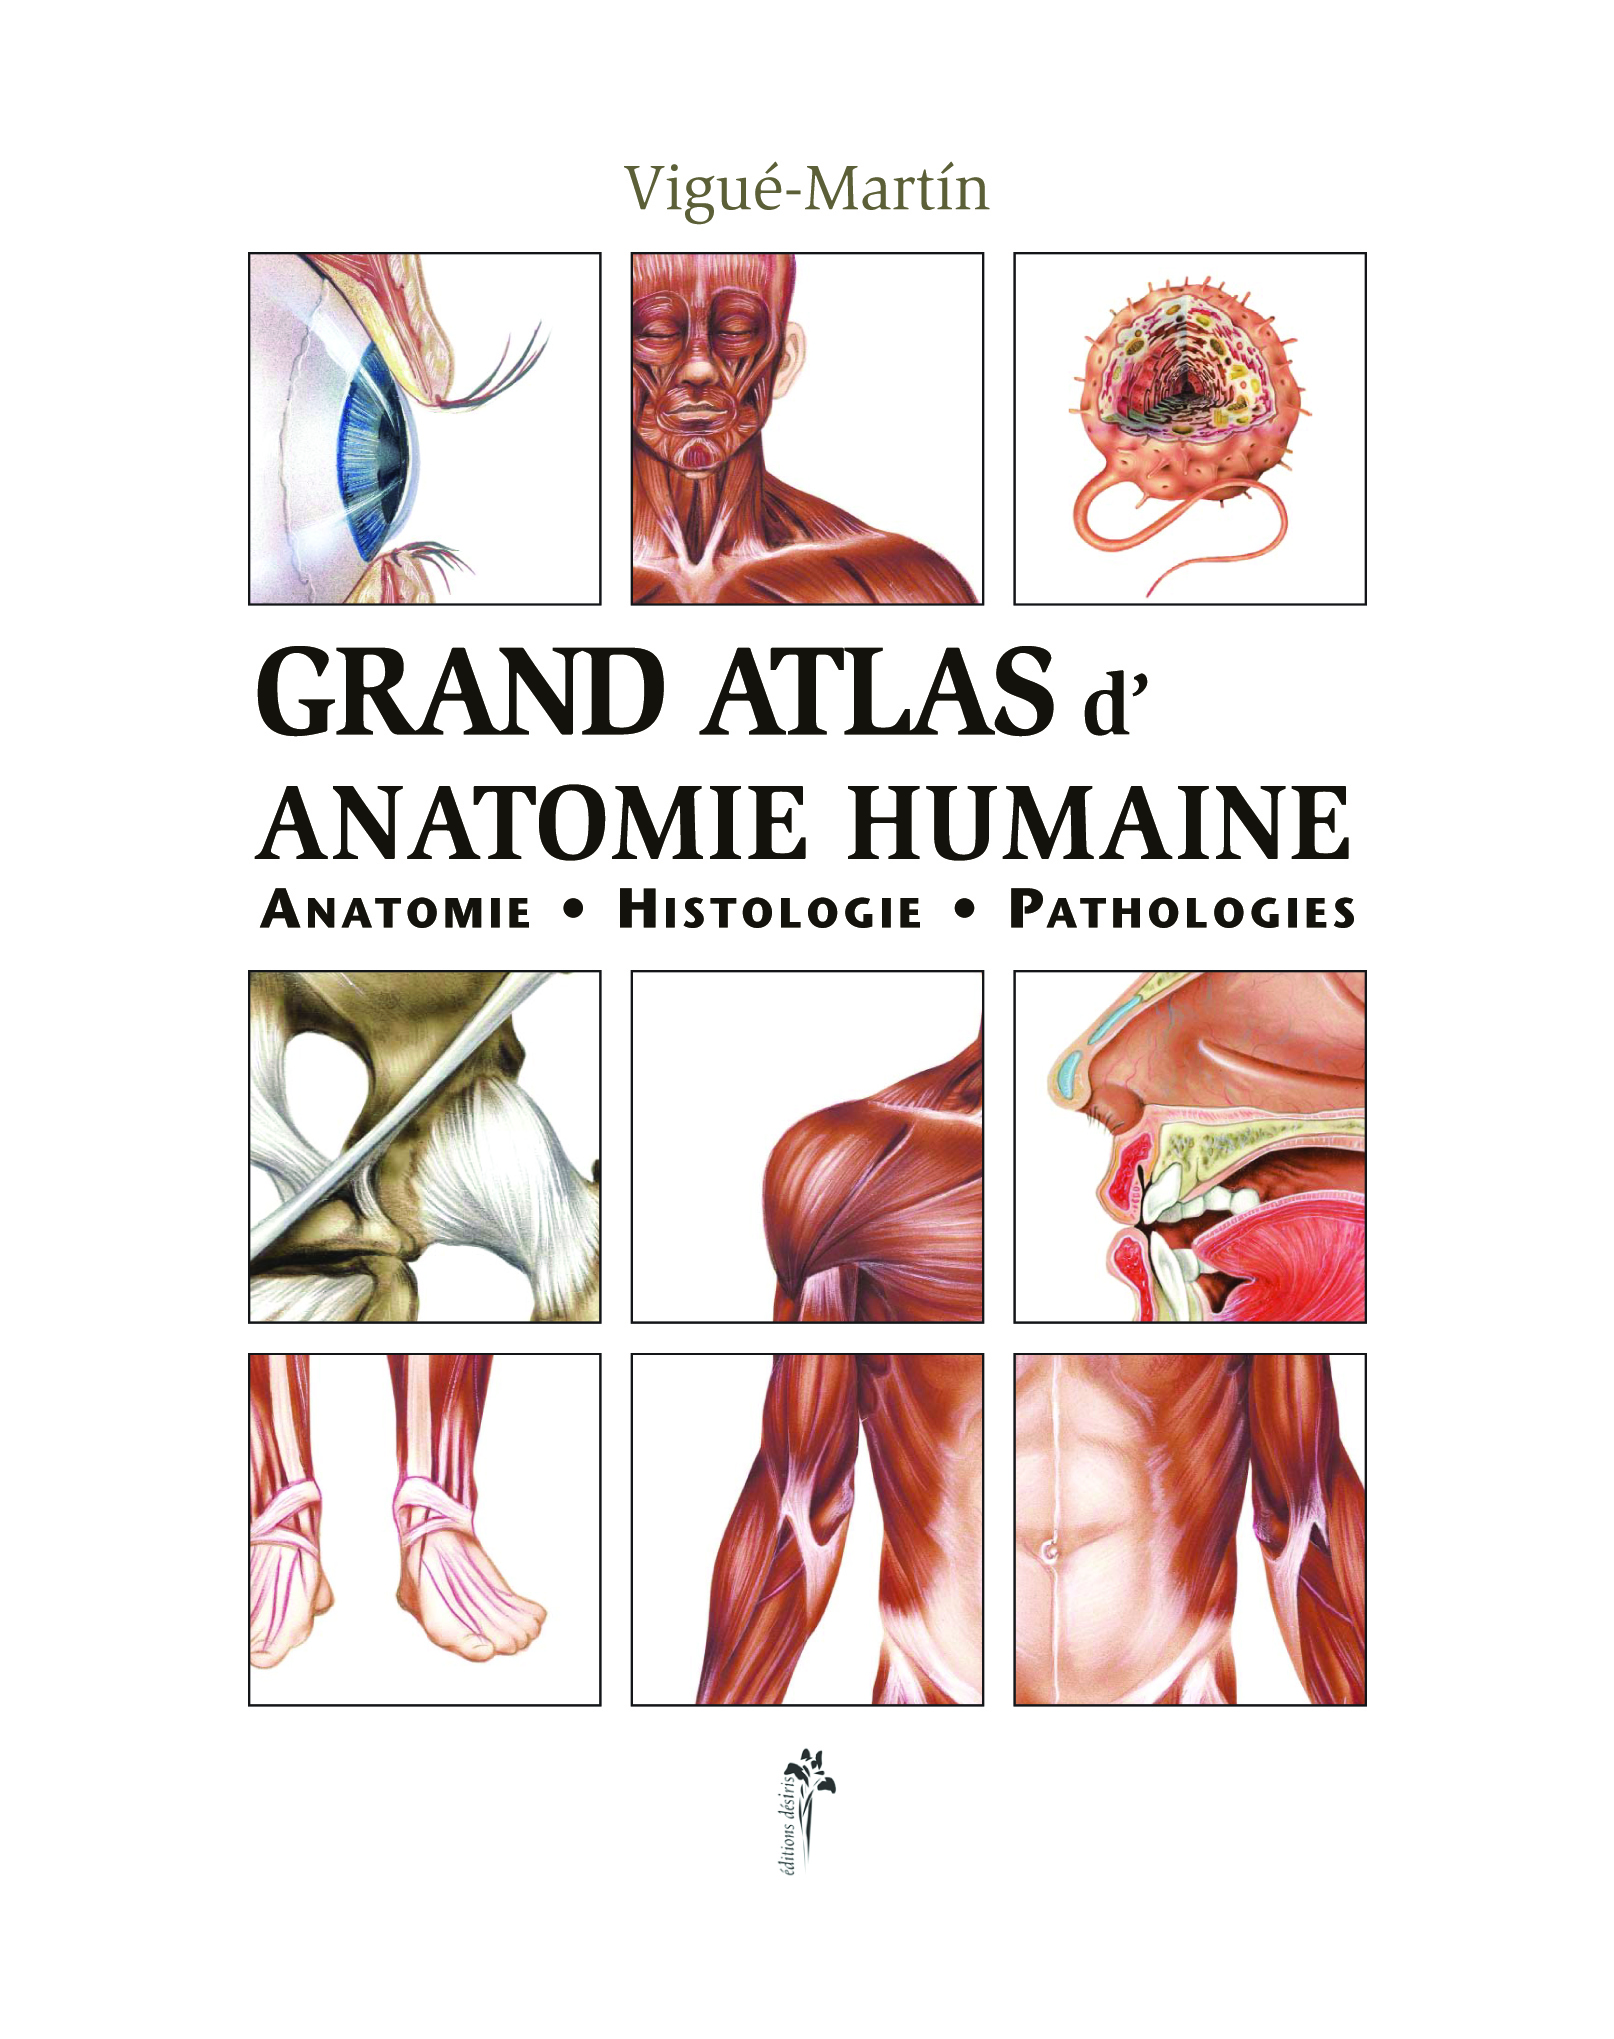 GRAND ATLAS D'ANATOMIE HUMAINE